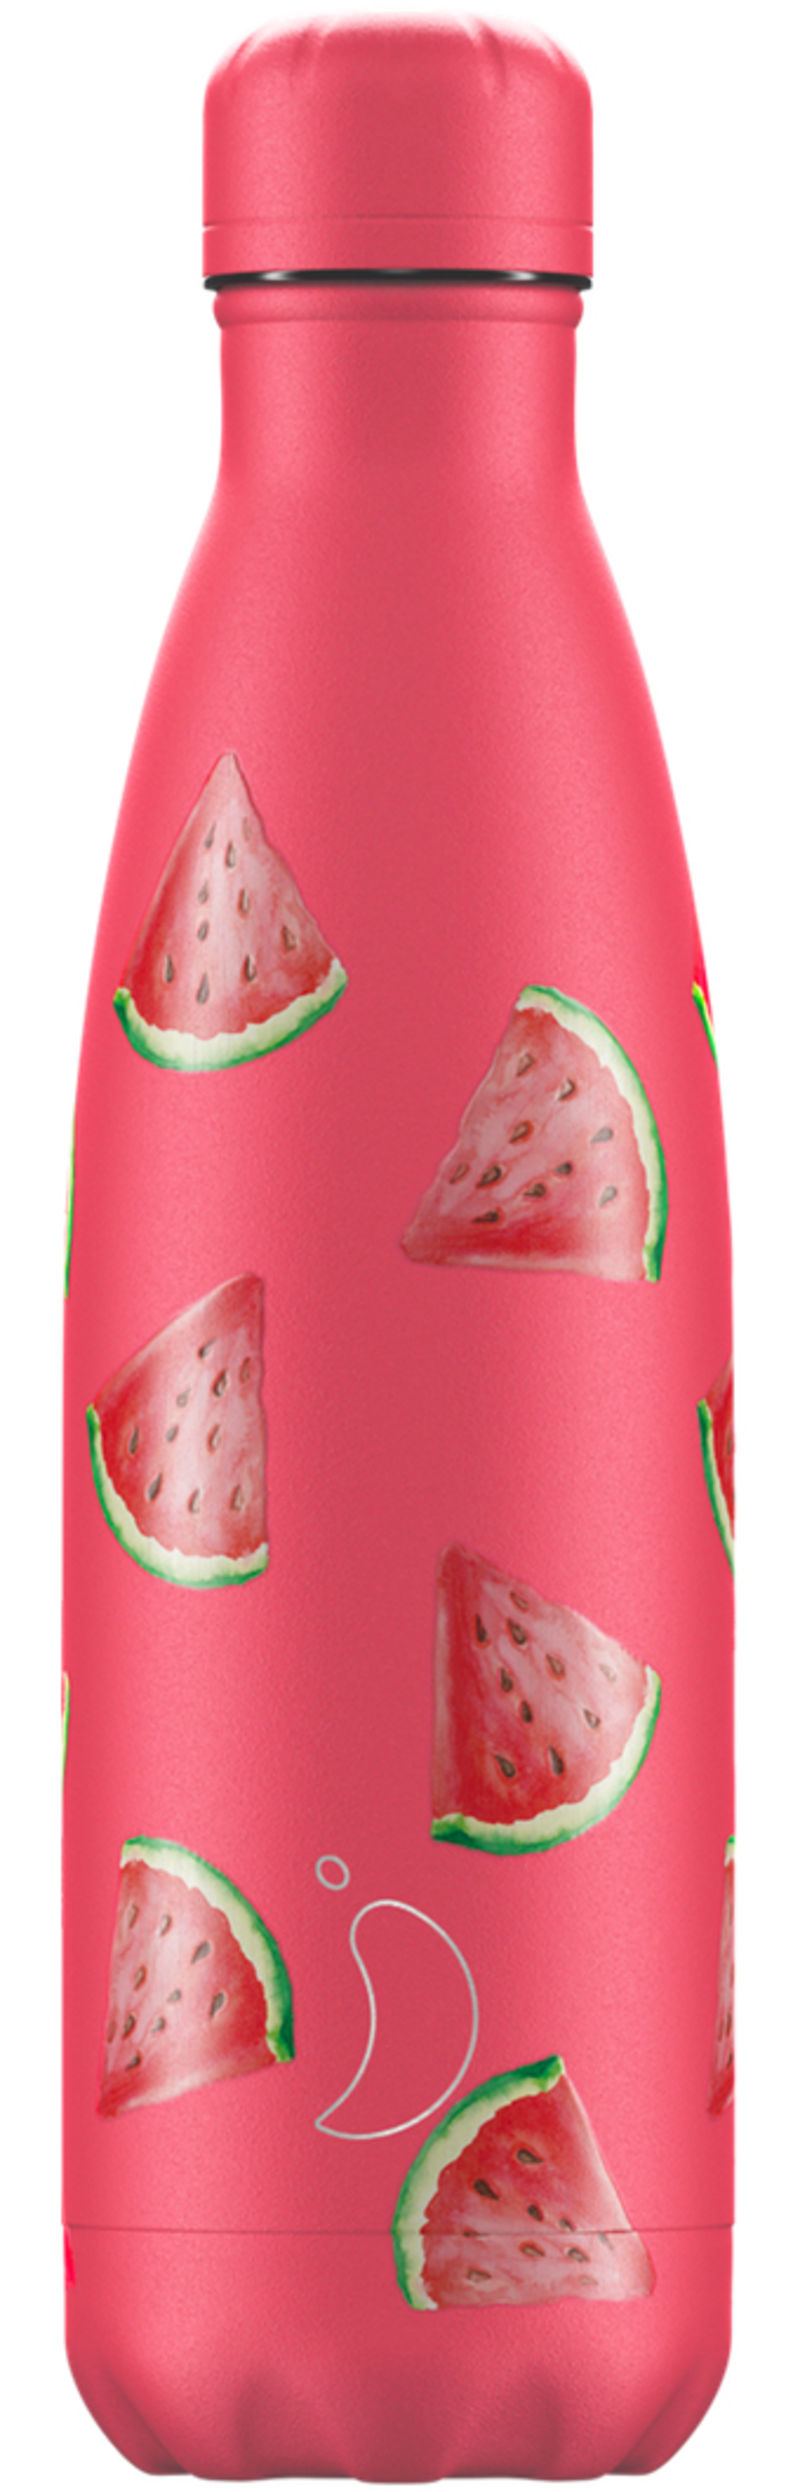 BOTELLA INOX FRUTAL SANDIAS 500ml